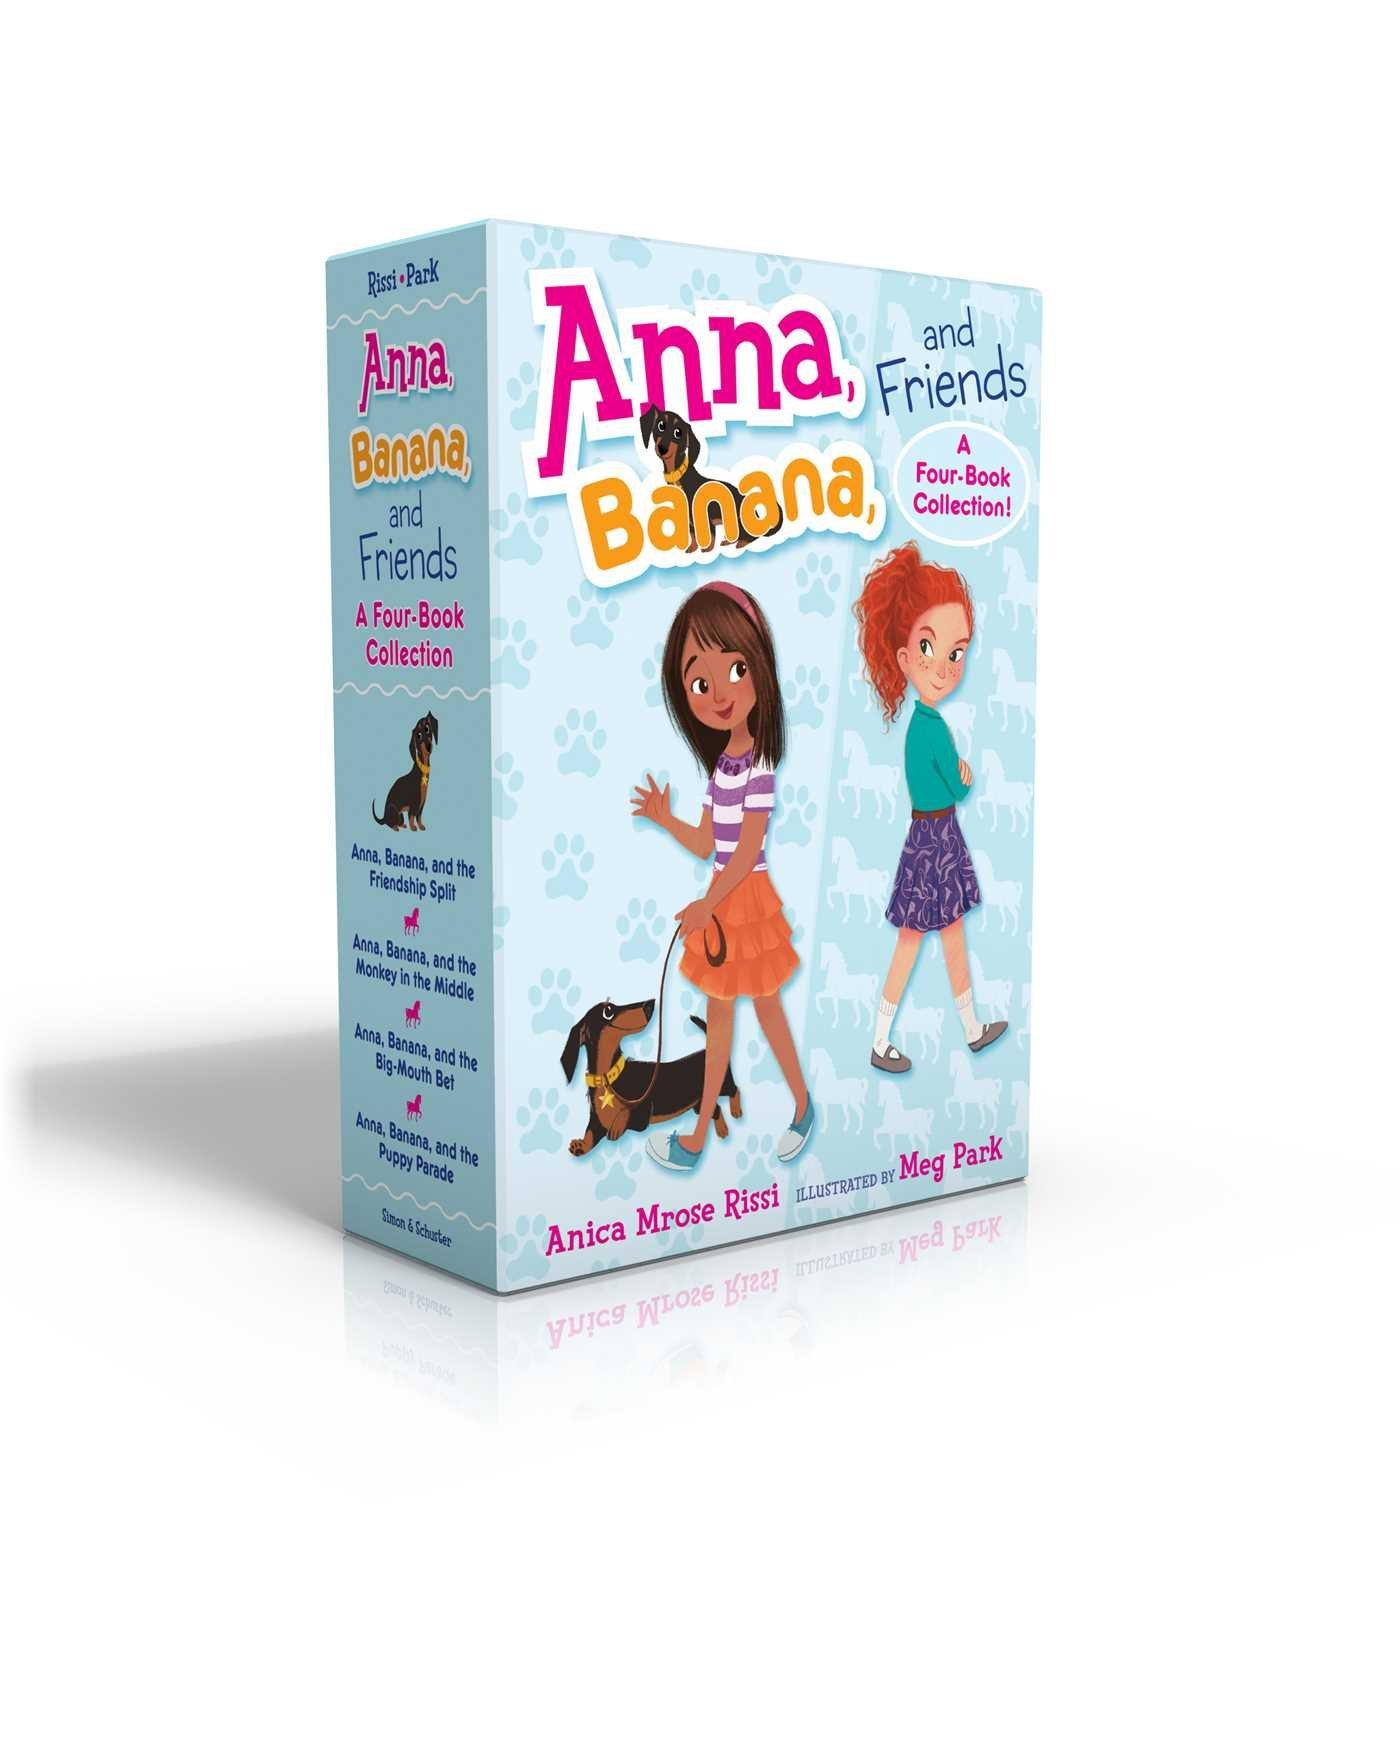 Anna, Banana, and Friends -- A Four-Book Collection!: Anna, Banana, and the Friendship Split; Anna, Banana, and the Monkey in the Middle; Anna, ... Bet; Anna, Banana, and the Puppy Parade